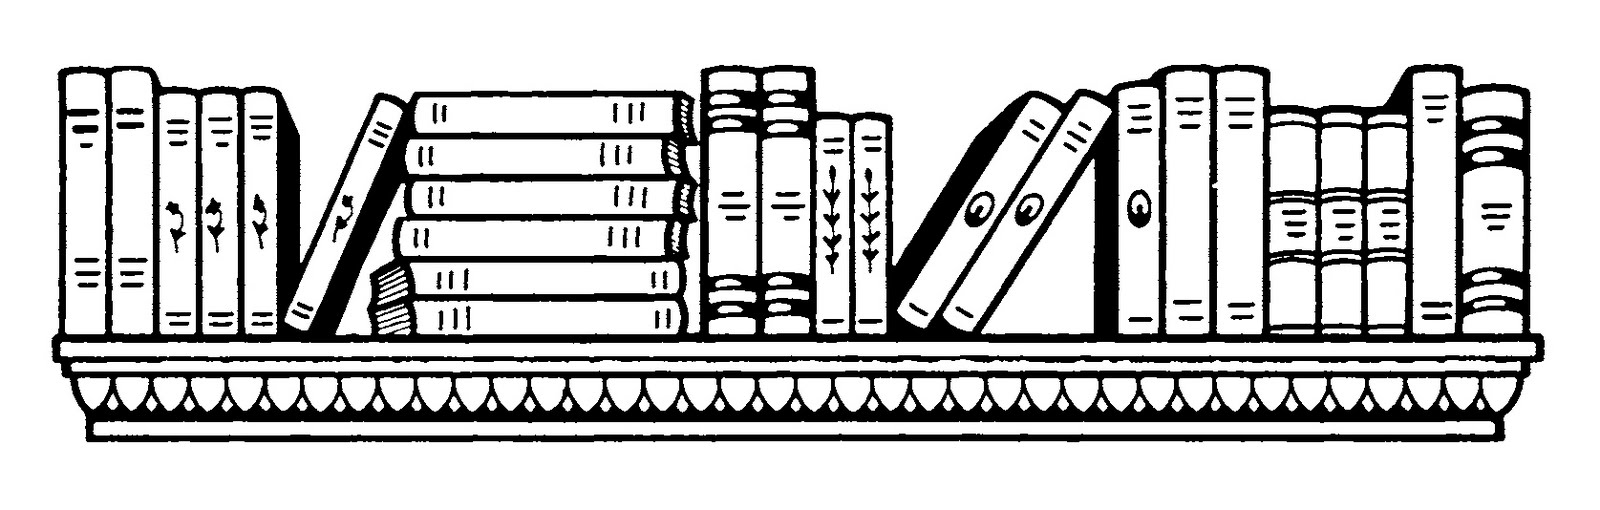 Free Library Black And White Clipart, Download Free Clip Art.